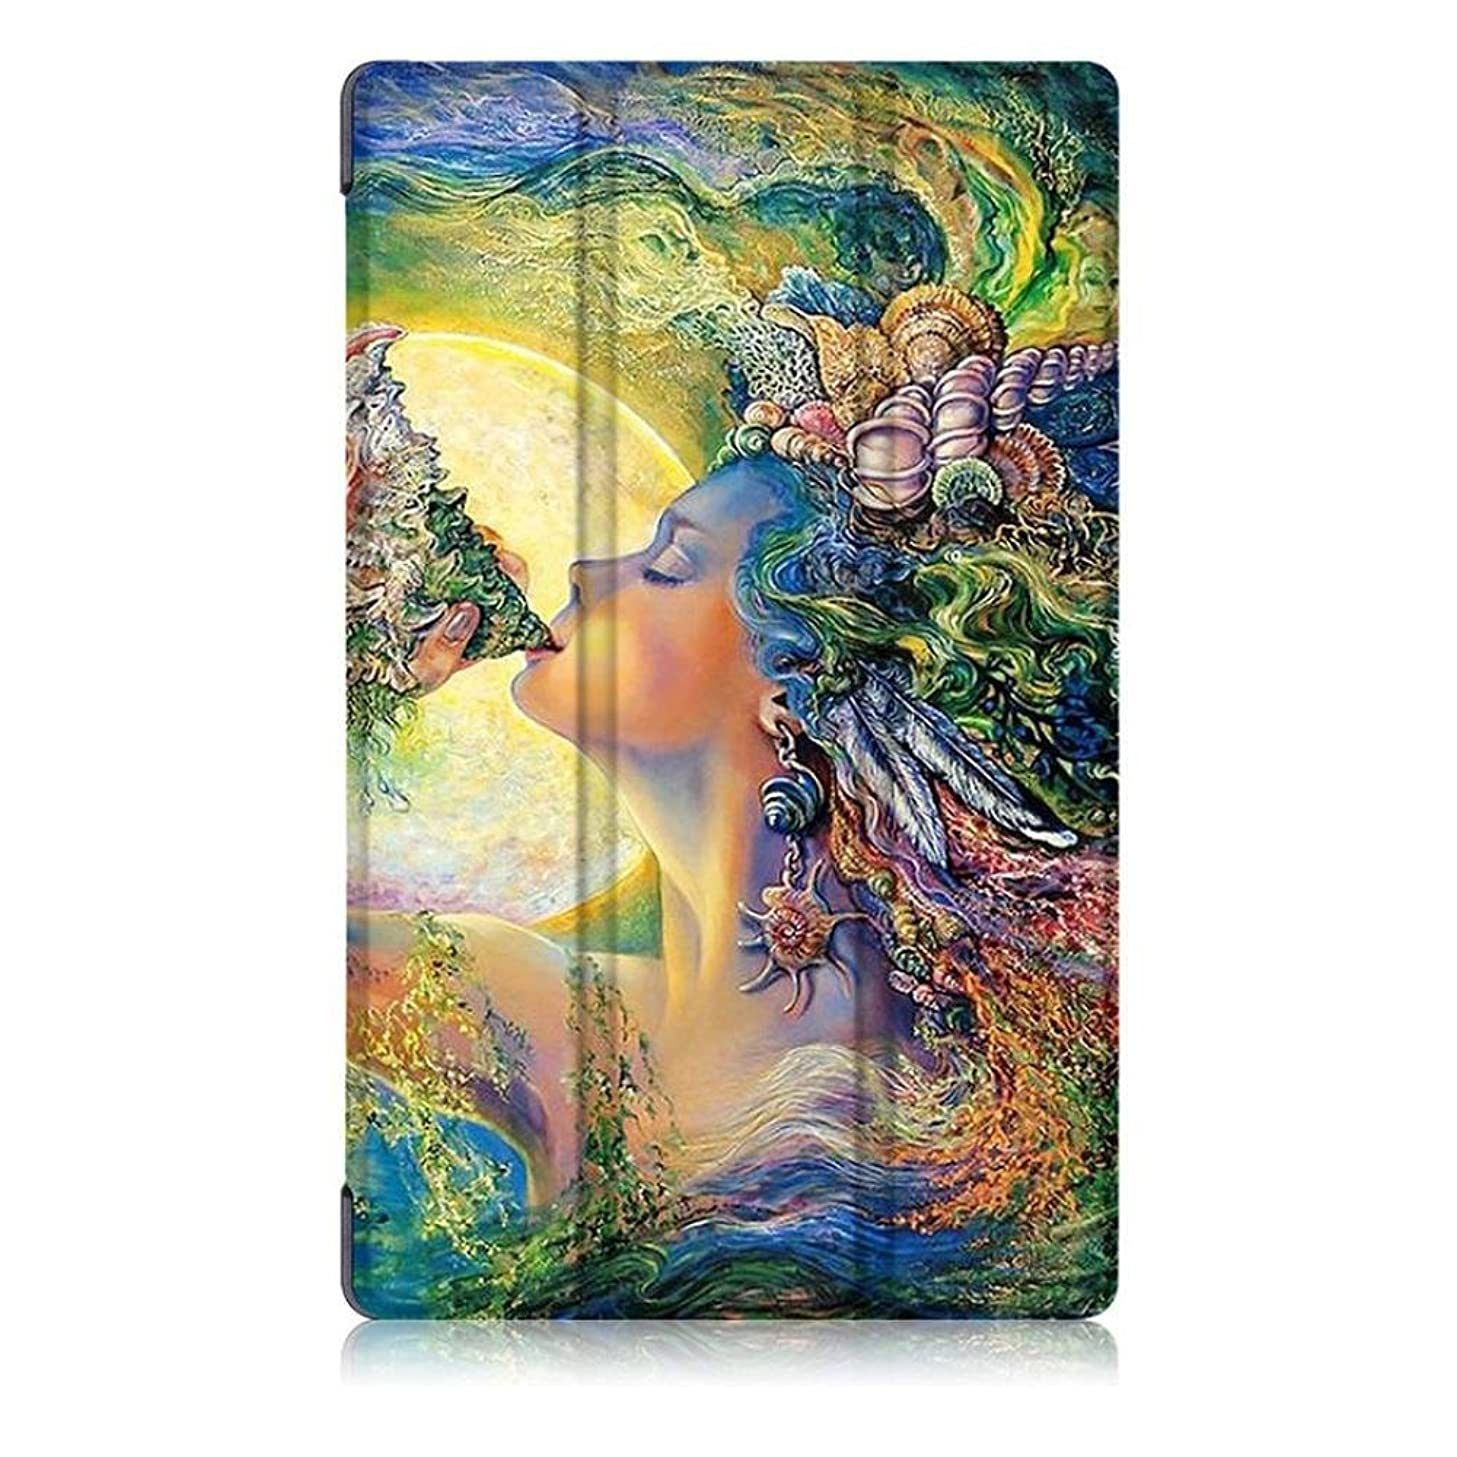 Amazon Kindle Fire HD 8 Inch Tablet Cover,FTXJ Fashion Stylish Pattern PU Leather Case,Multicolor